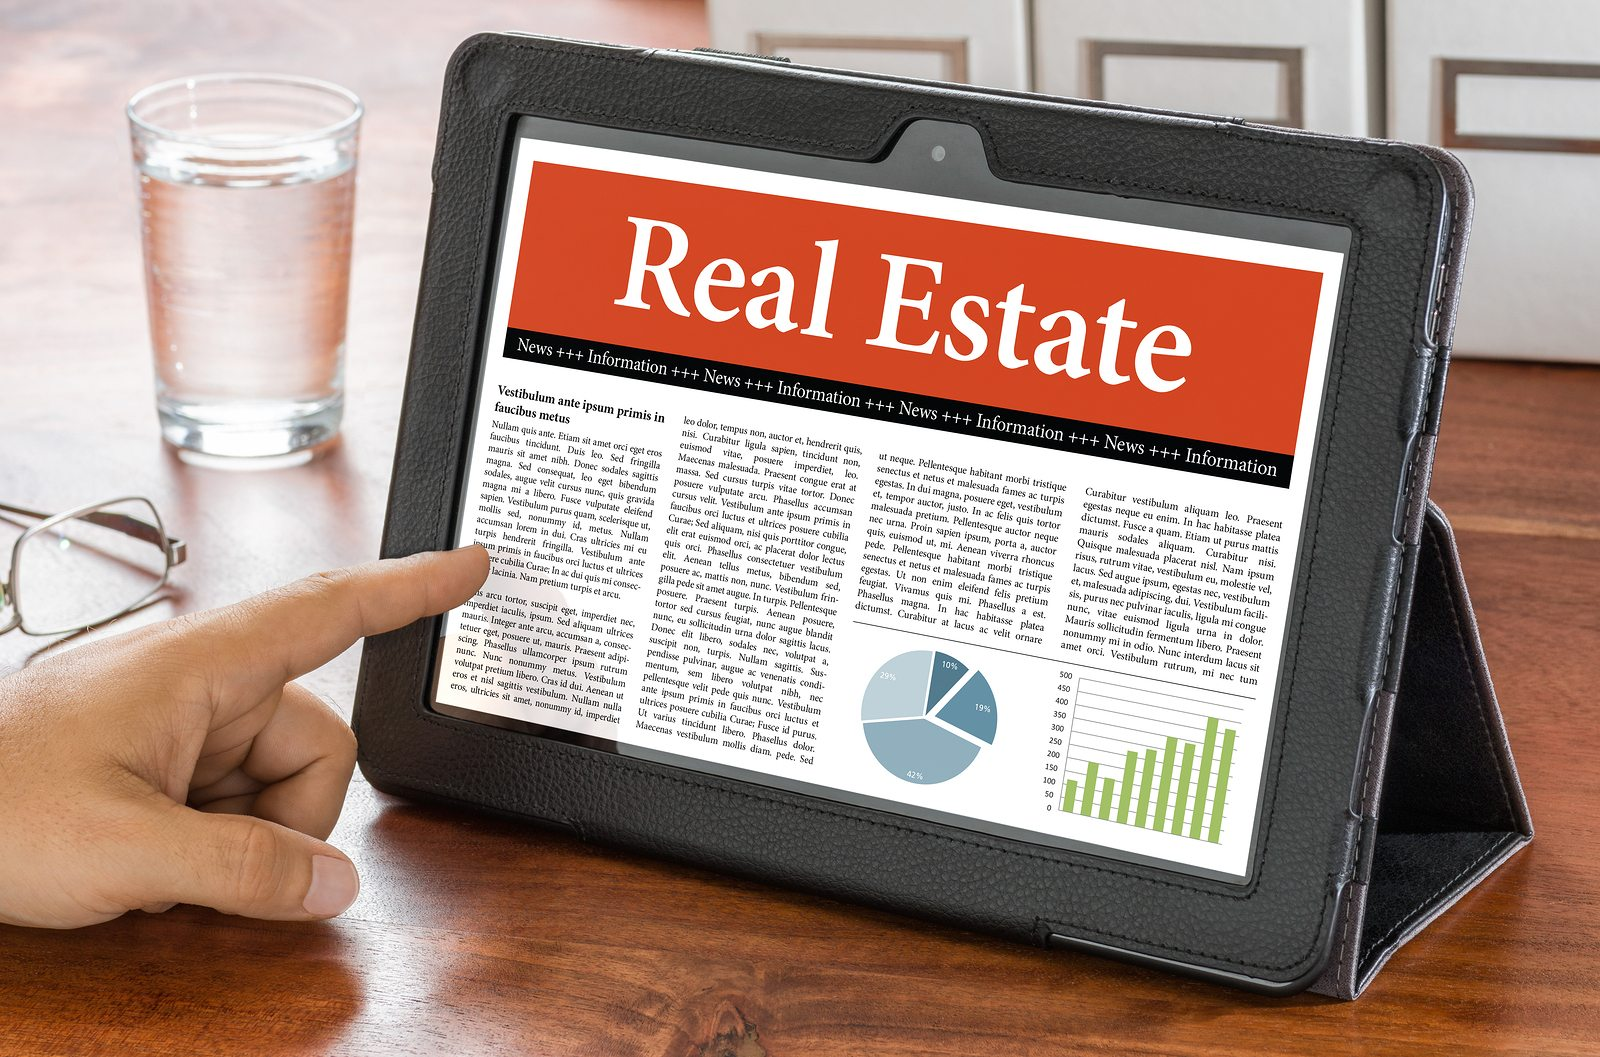 Real Estate IRAs More Coveted as Supply Dwindles Against Demand